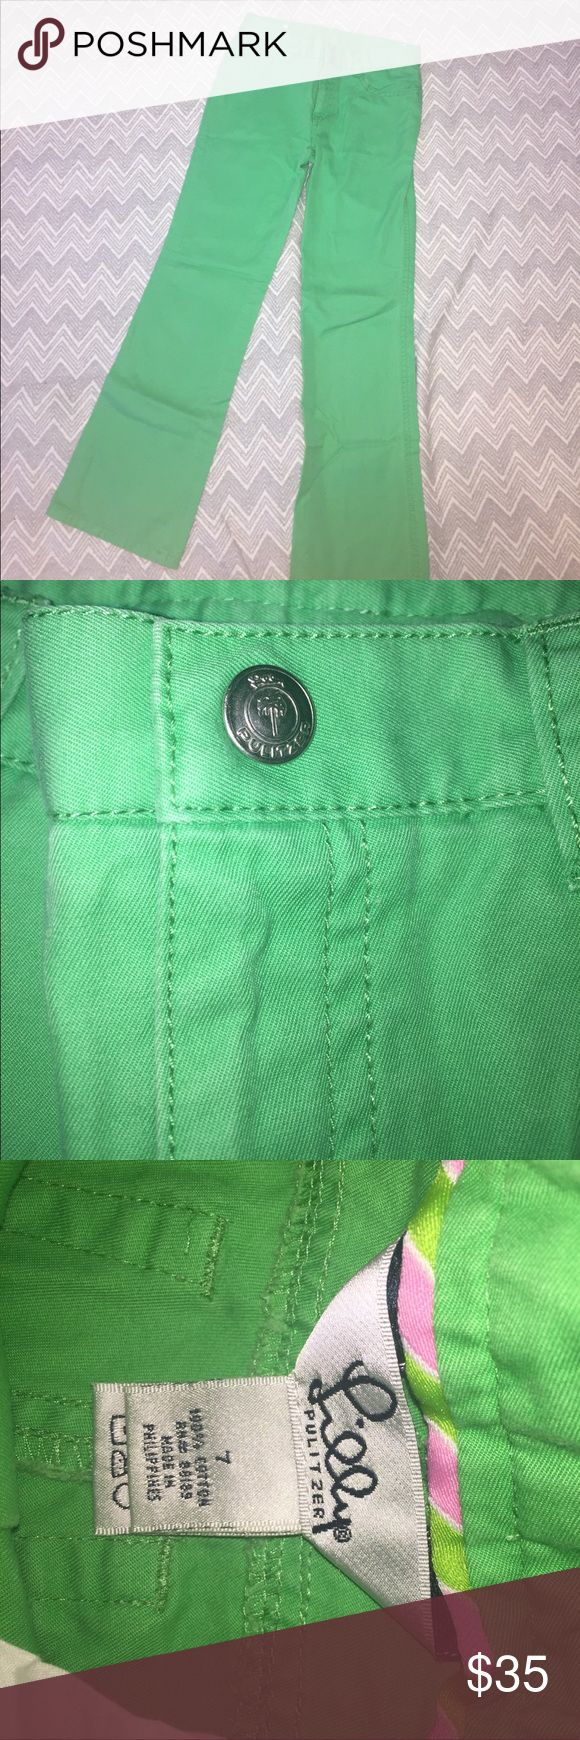 """Lilly Pulitzer Kelly Green pants Lilly Pulitzer Kelly green pants size 7. Beltloops and pockets. Silvertone snap with Lilly logo palm tree stamped """"lilly Pulitzer"""". From a smoke free and pet free home Lilly Pulitzer Bottoms"""